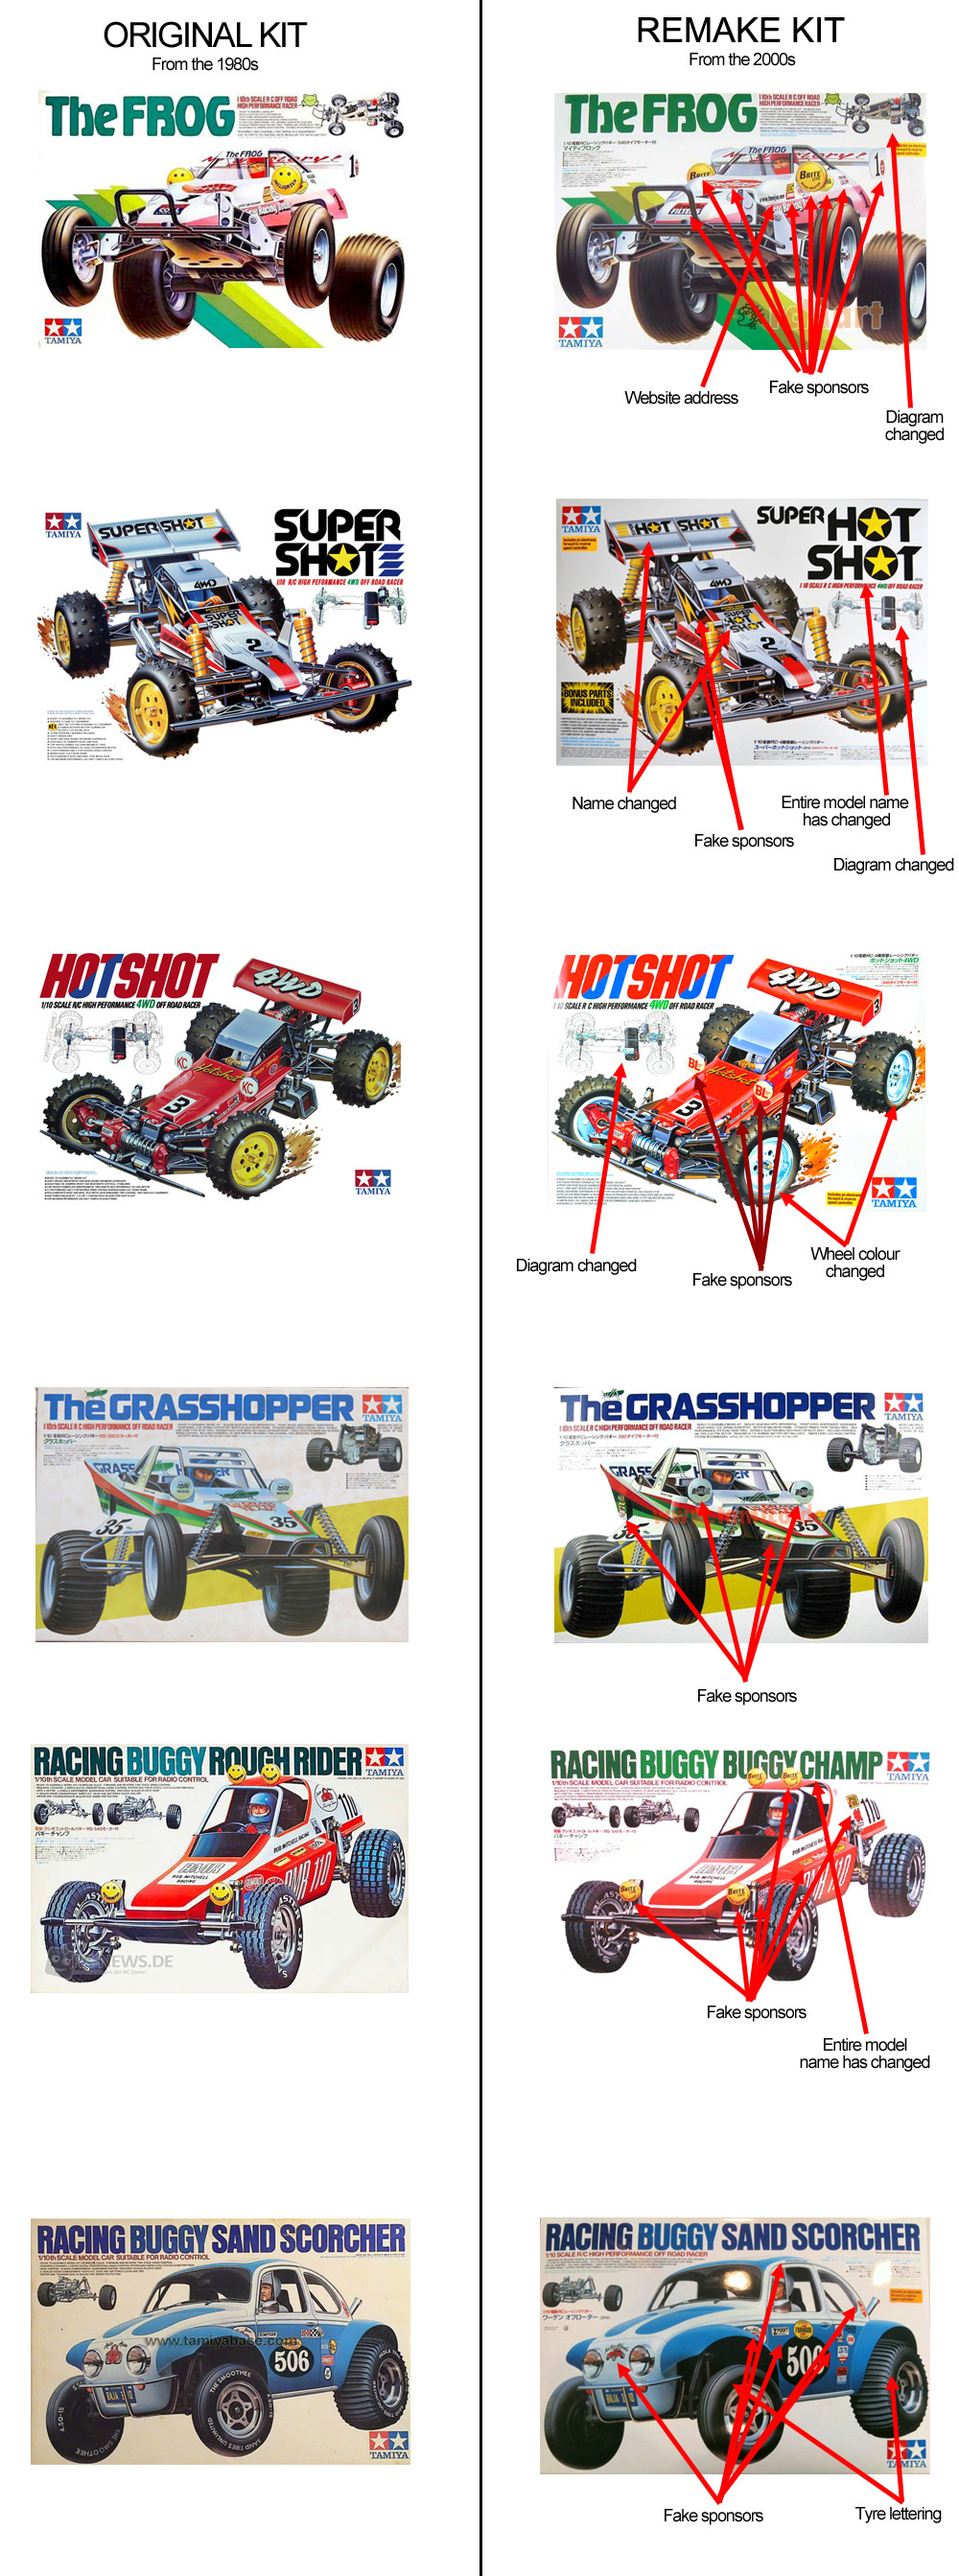 A Quick Guide To Vintage Vs Remake Tamiya R C Kits R C Toy Memories